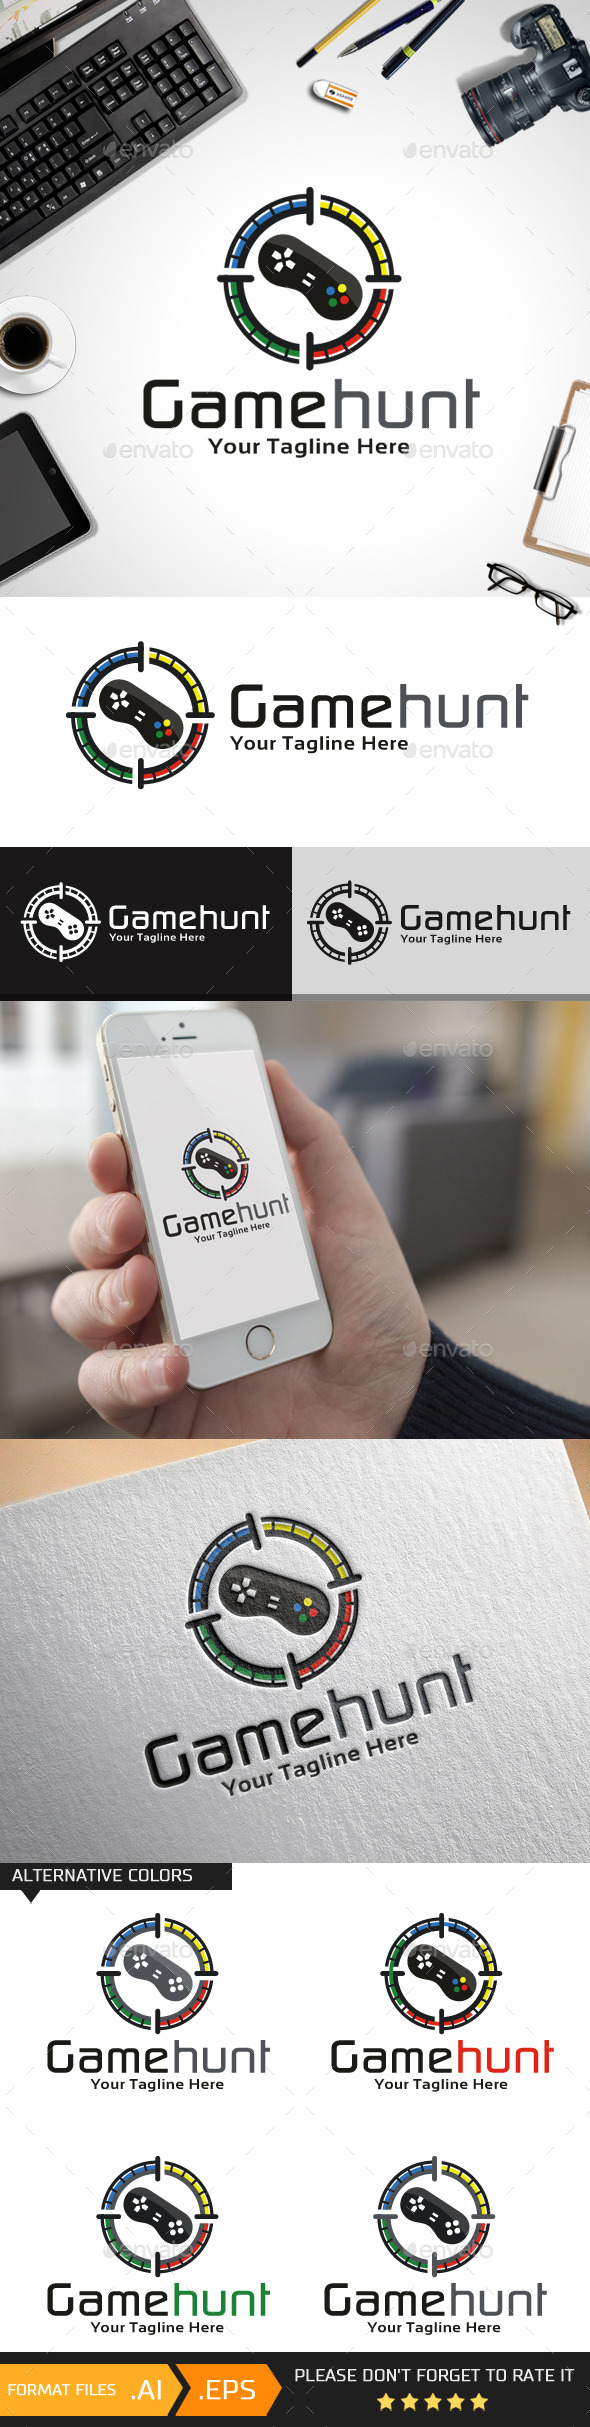 Game Hunt Logo Template